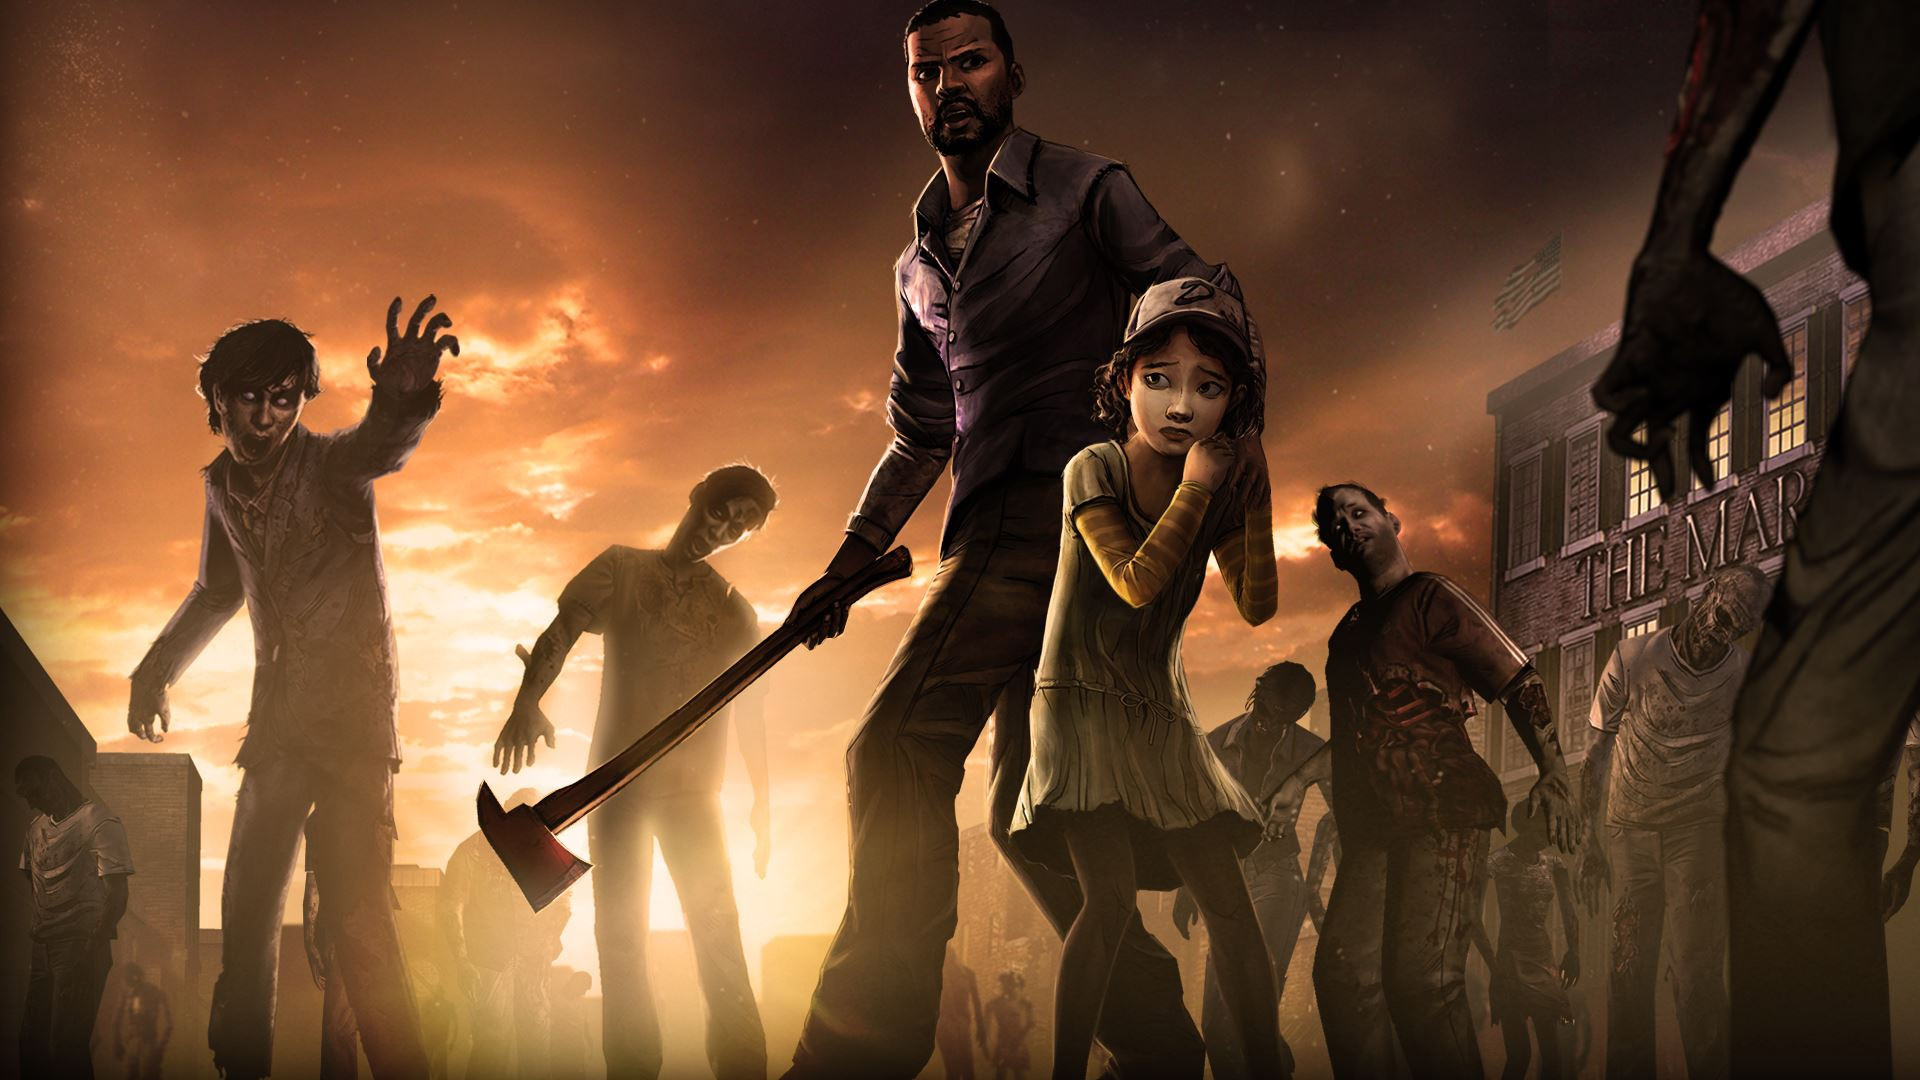 The Walking Dead - KeyArt Render